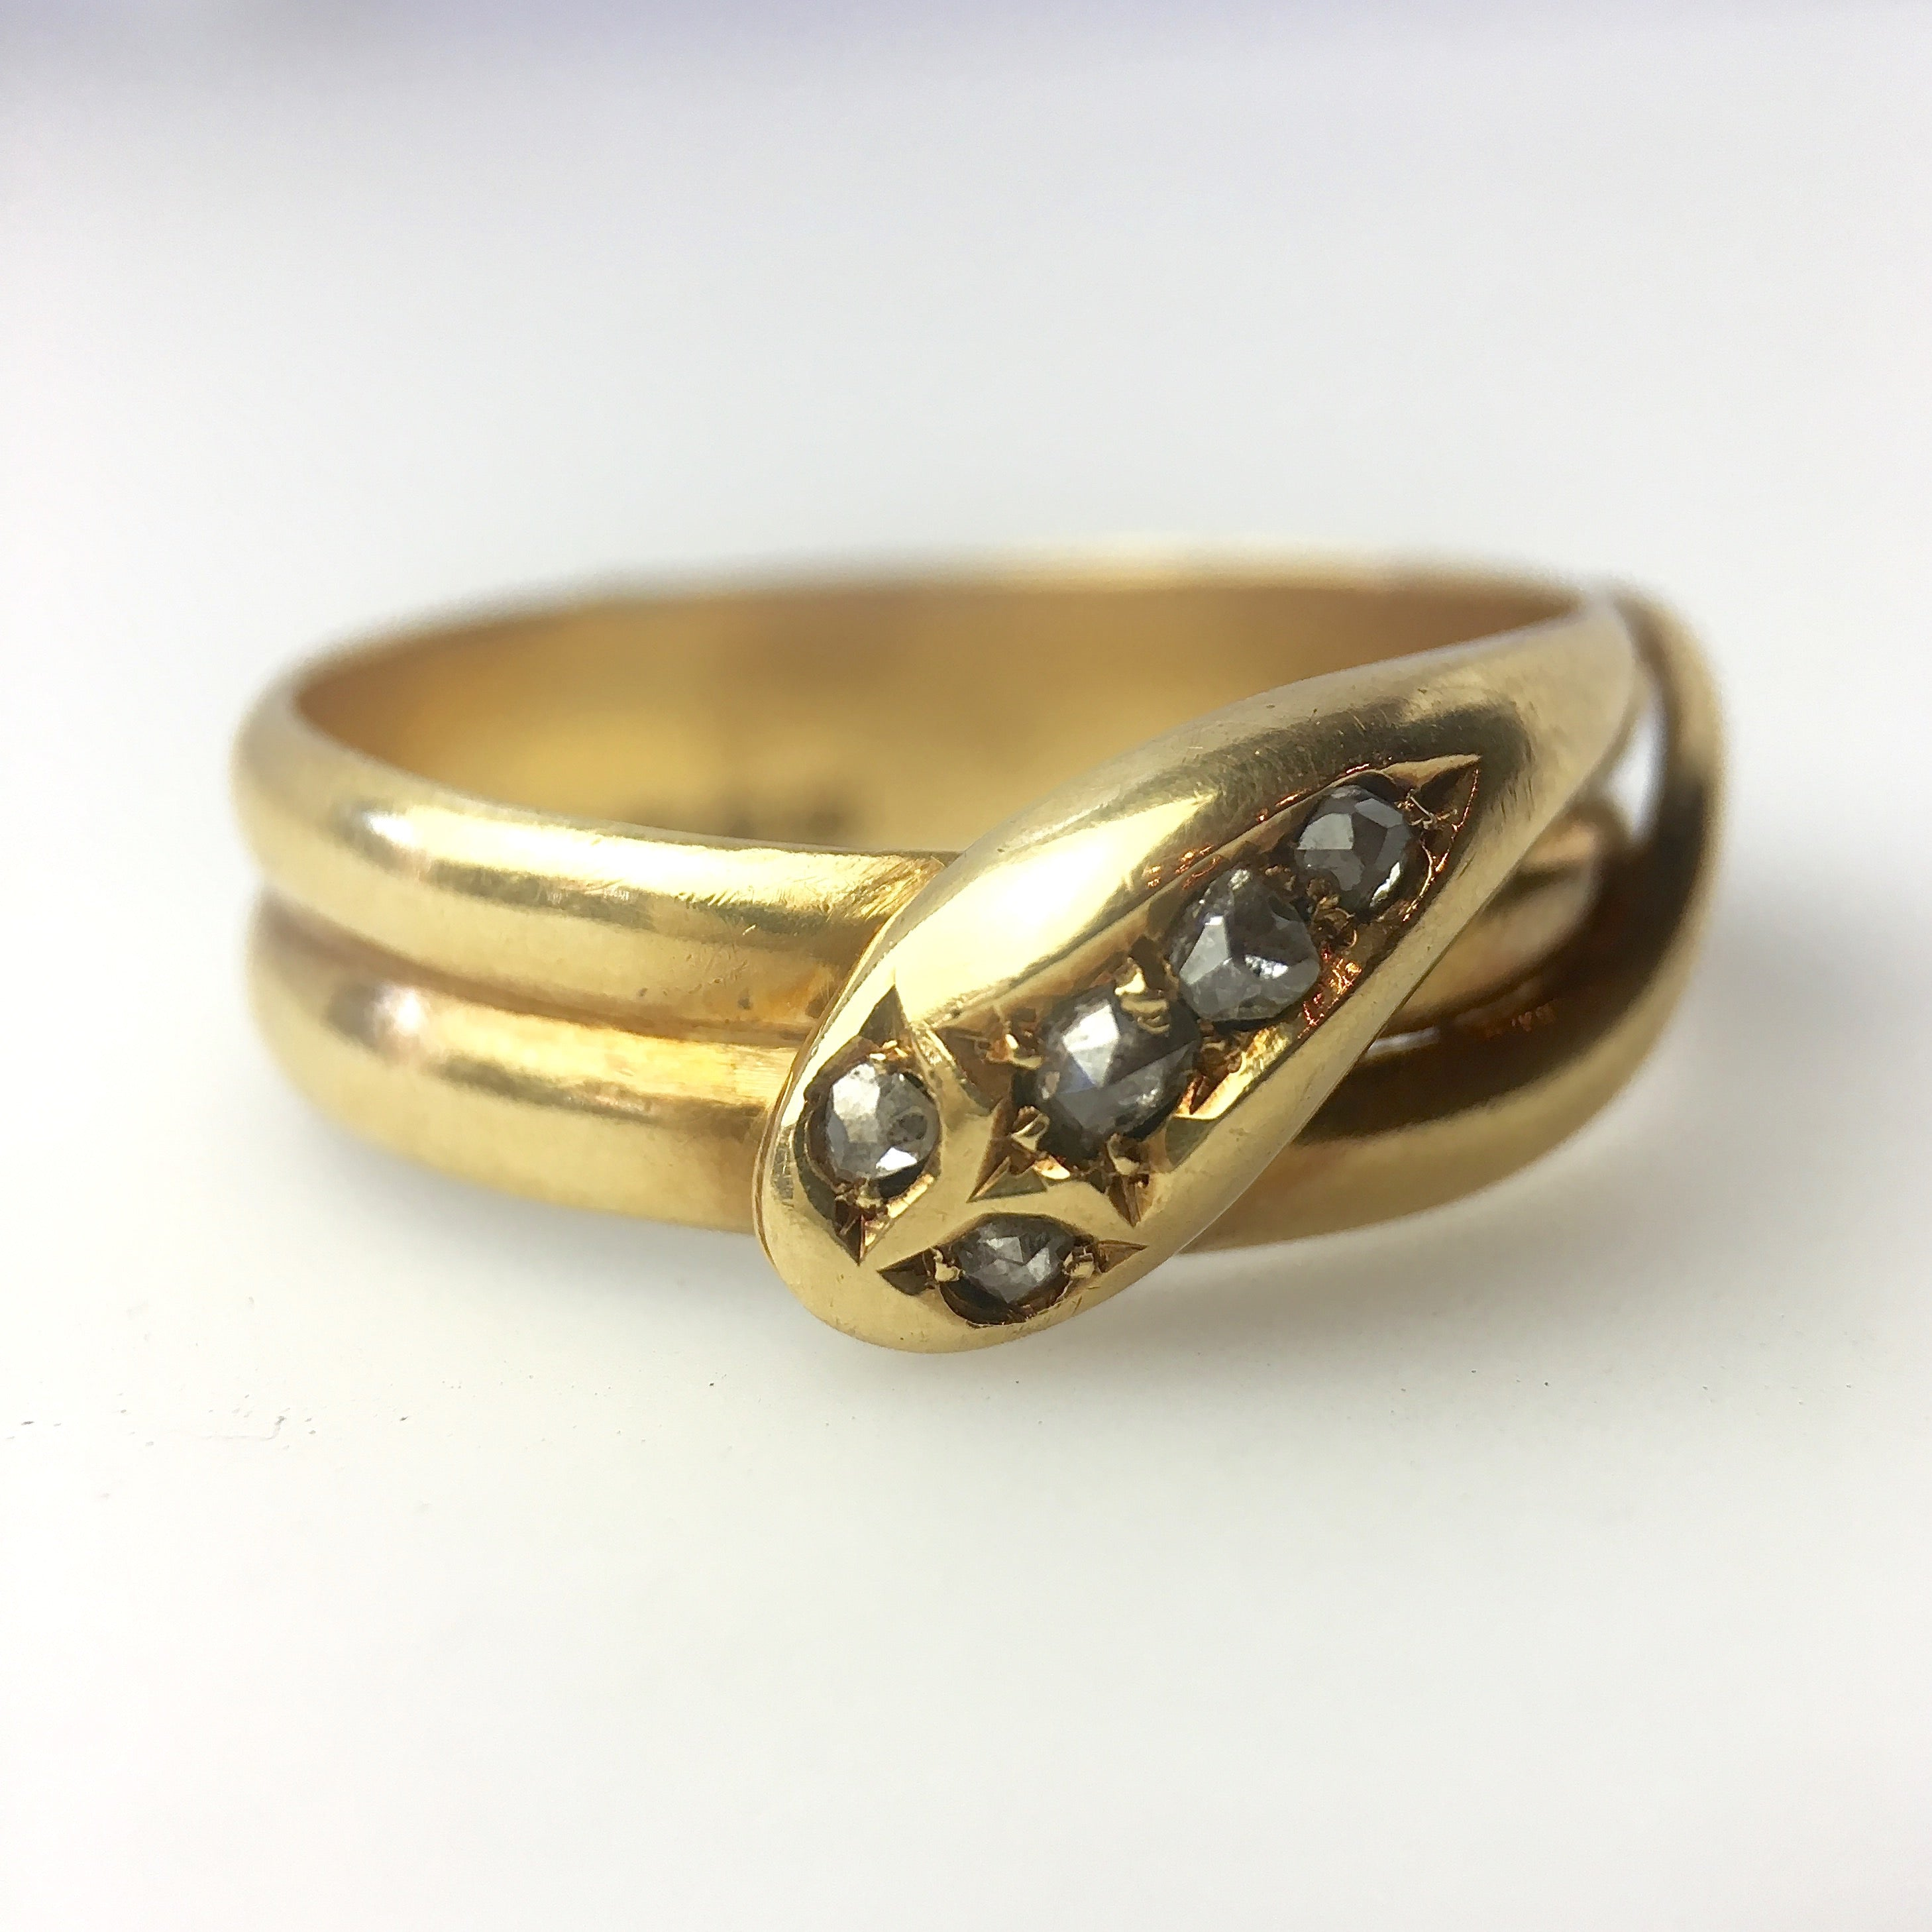 Antique Snake Ring with rose cut diamonds